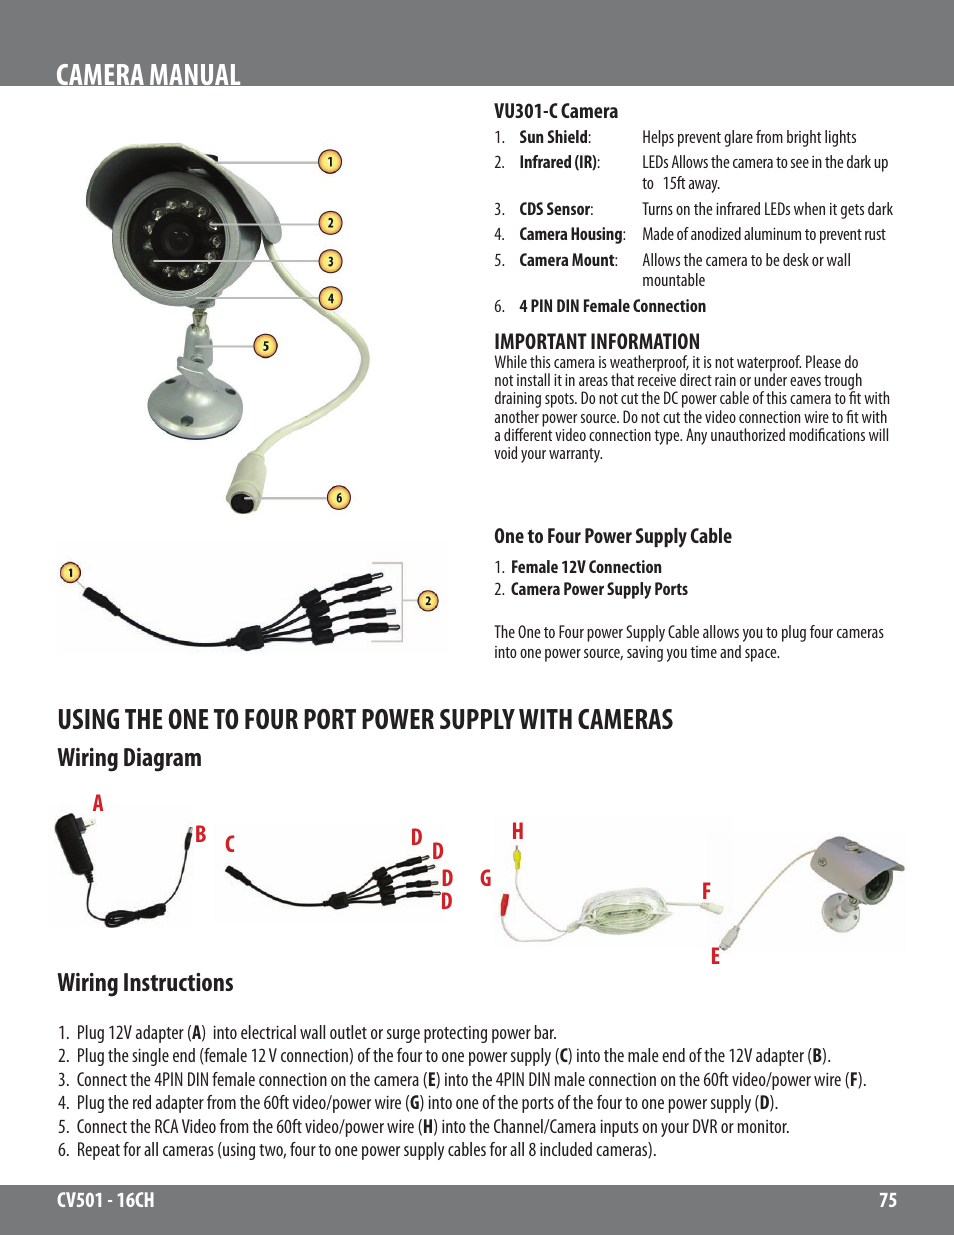 Camera Manual Wiring Diagram Instructions Svat Electronics Electrical Diagrams Video Cv501 16ch User Page 75 78